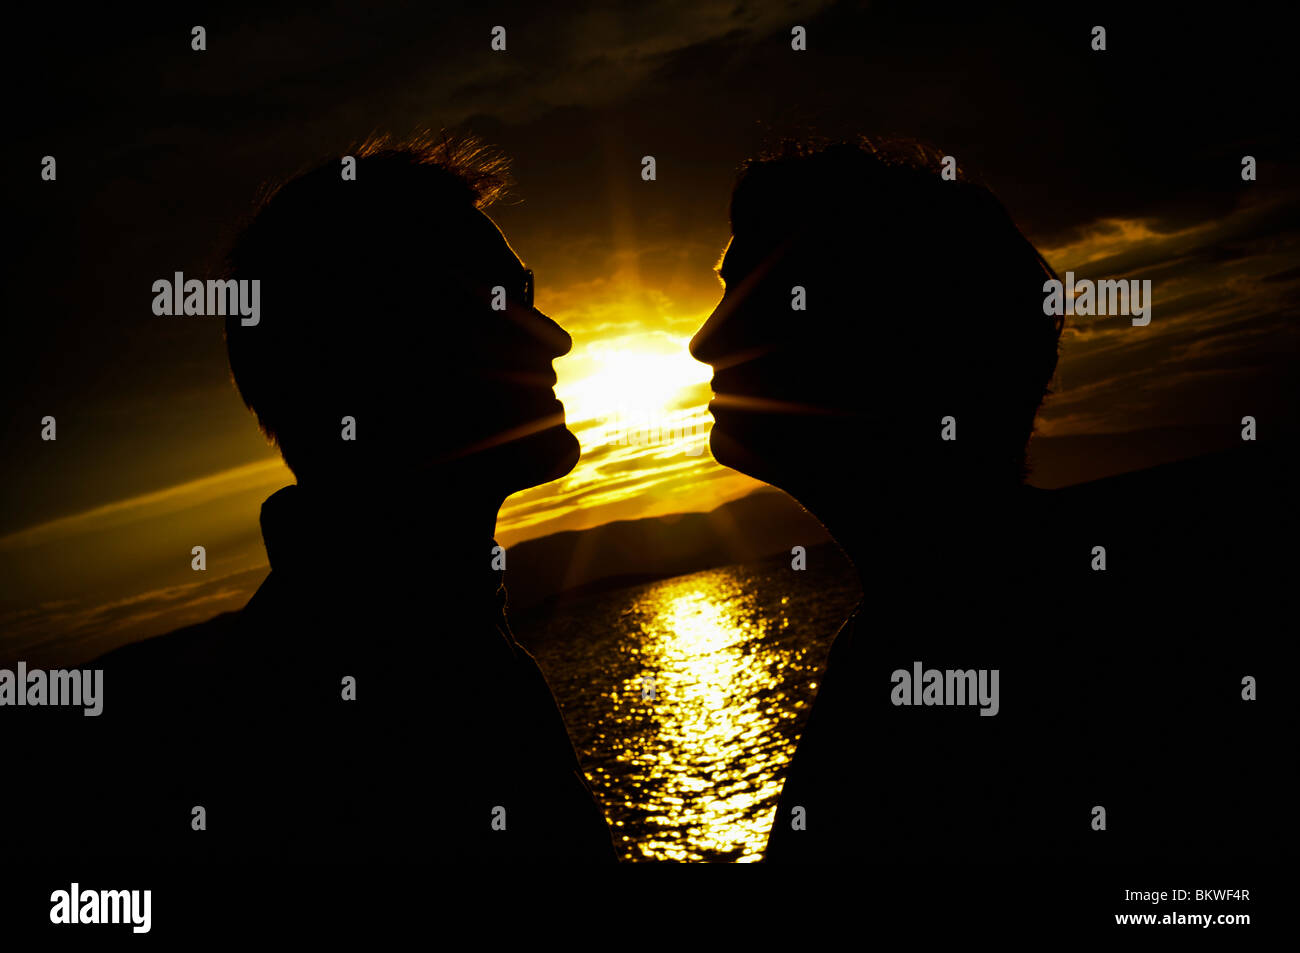 Two men and a beautiful sunset - Stock Image